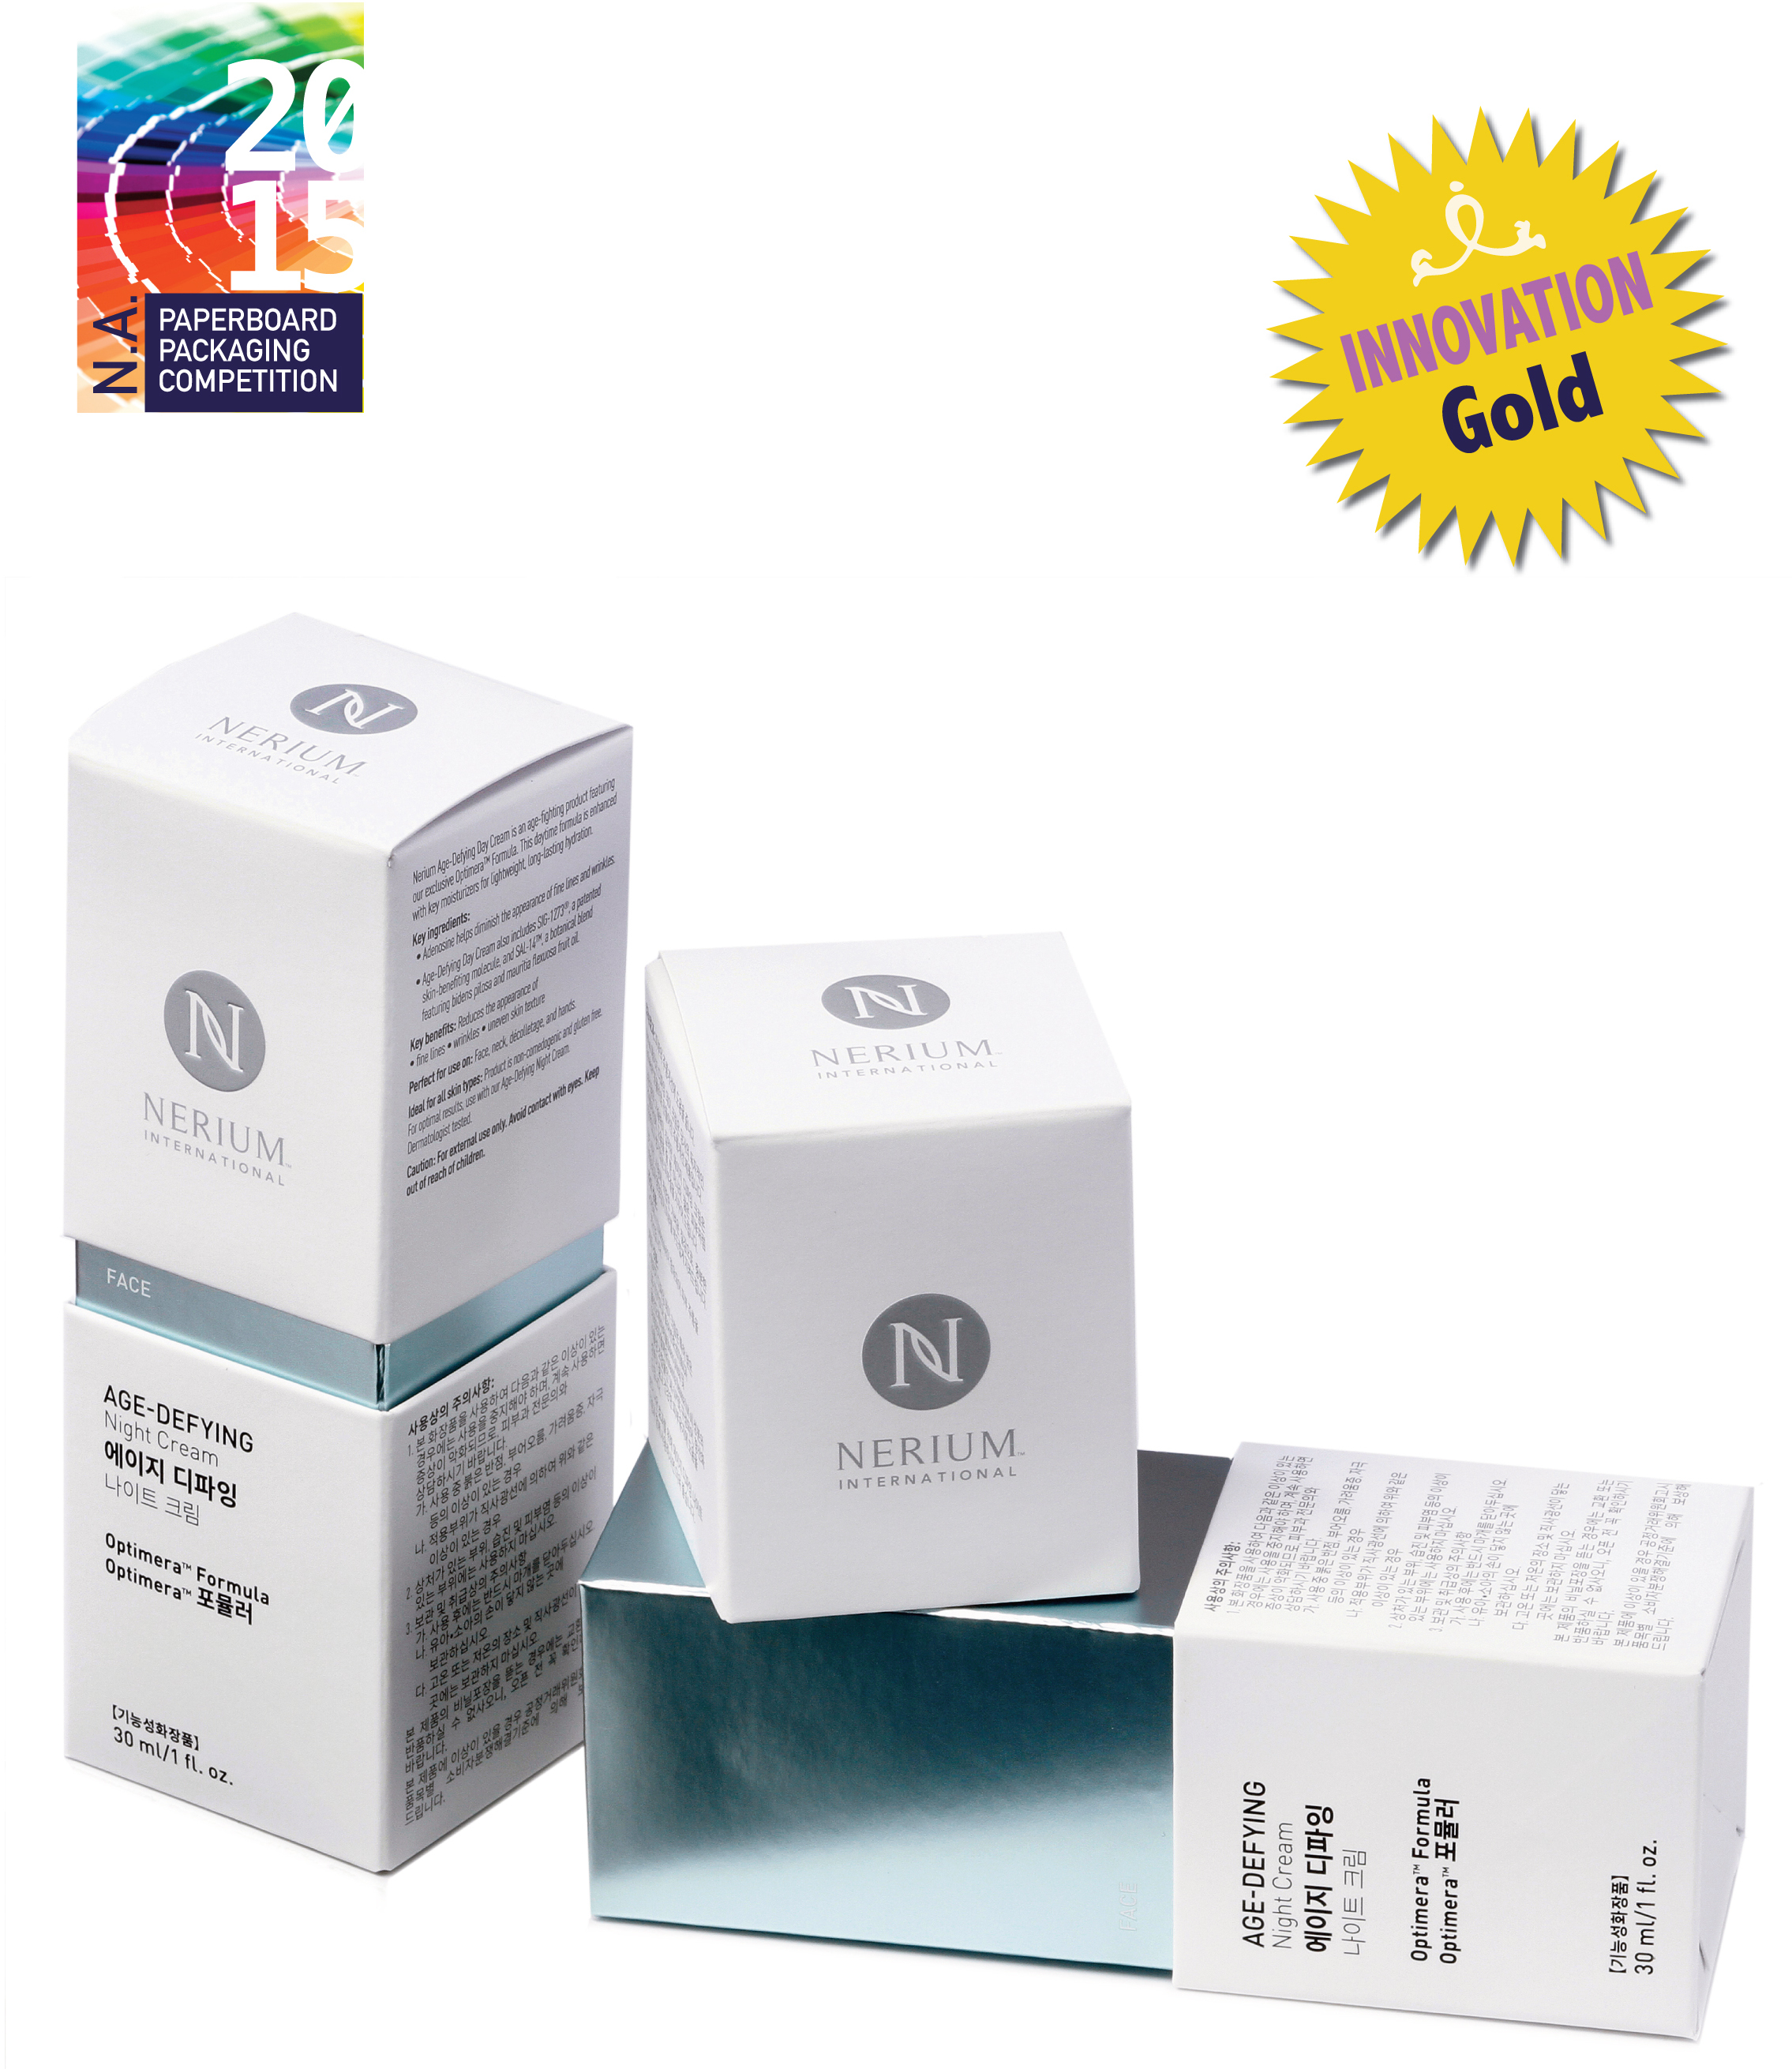 nerium 3-piece folding carton packaging